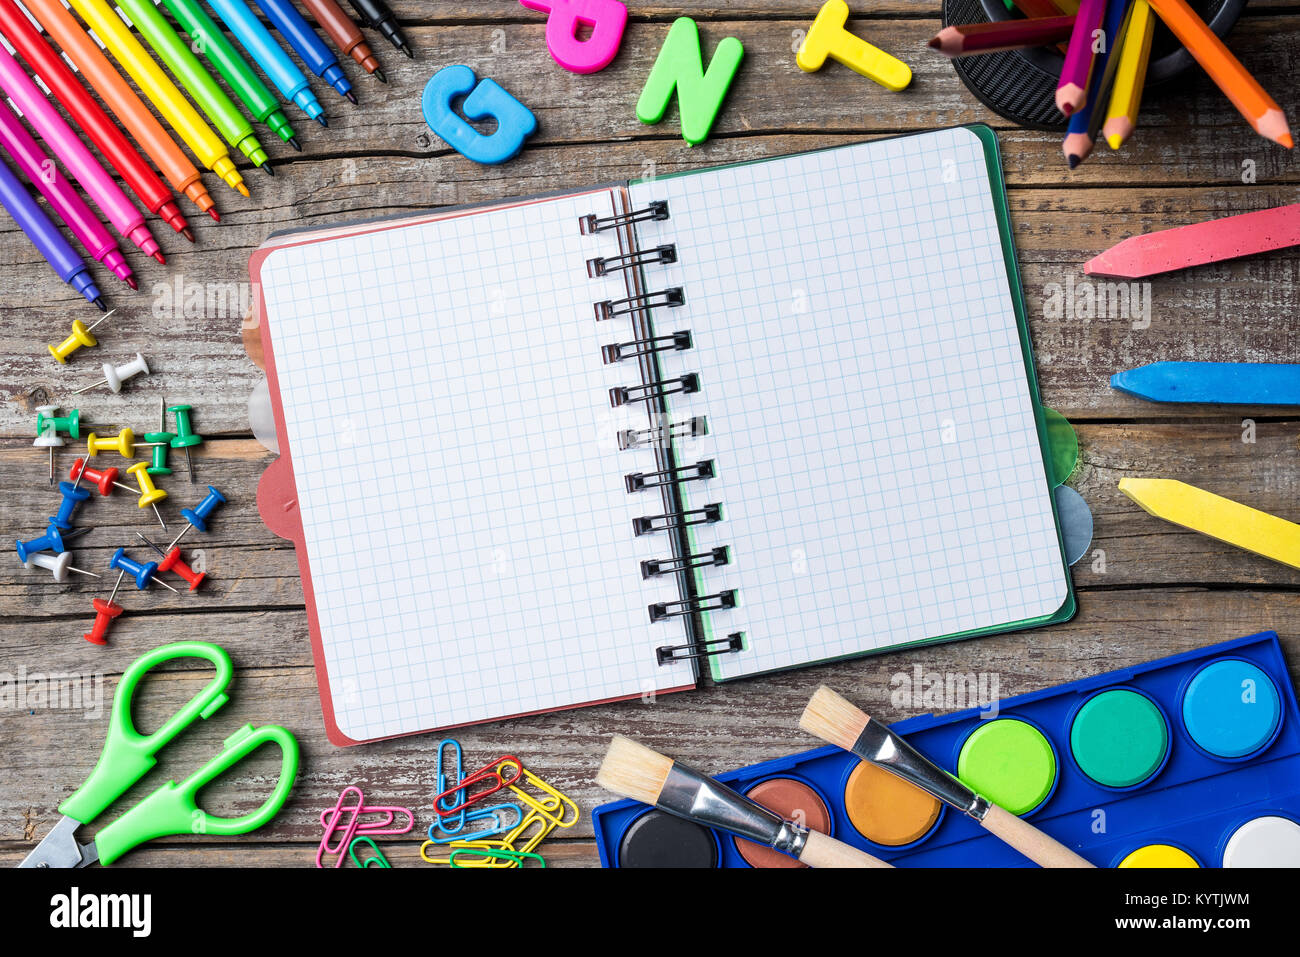 School supplies or accessories on an old wooden table Stock Photo